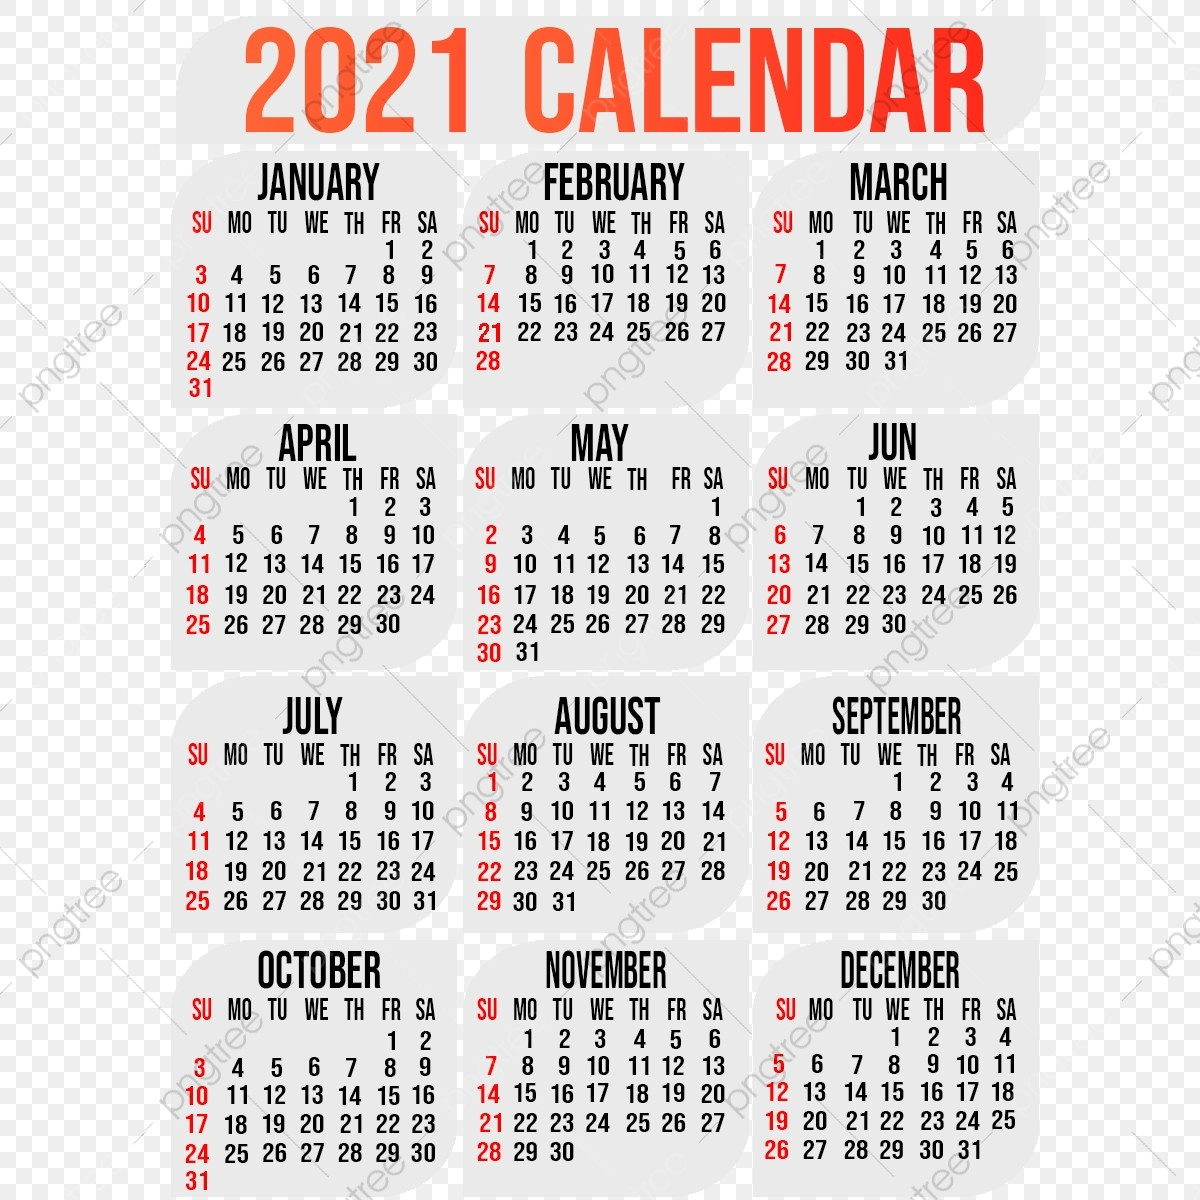 2021 calendar template with background design